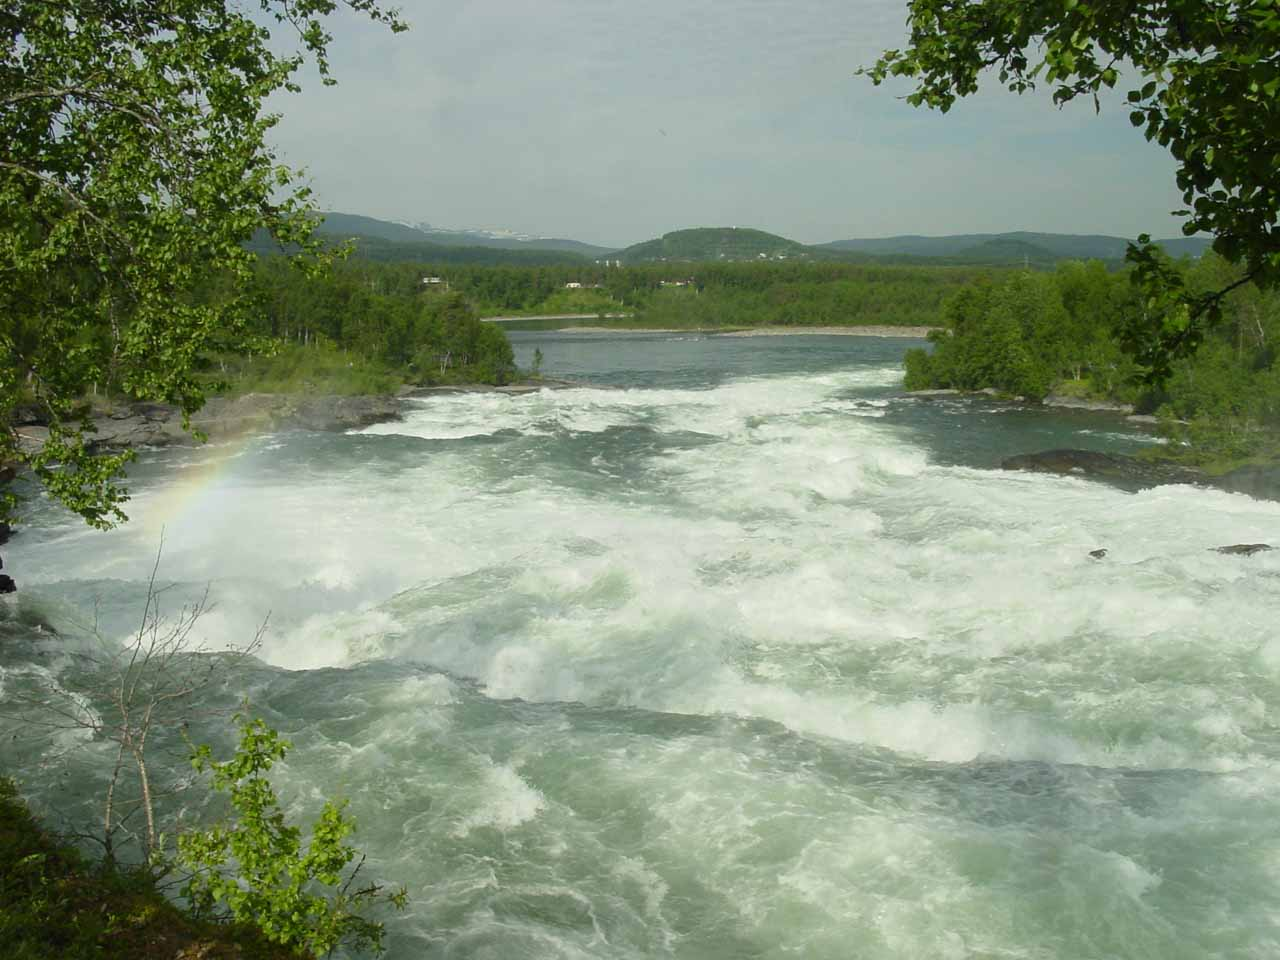 Looking downstream from Målselvfossen with a slight rainbow